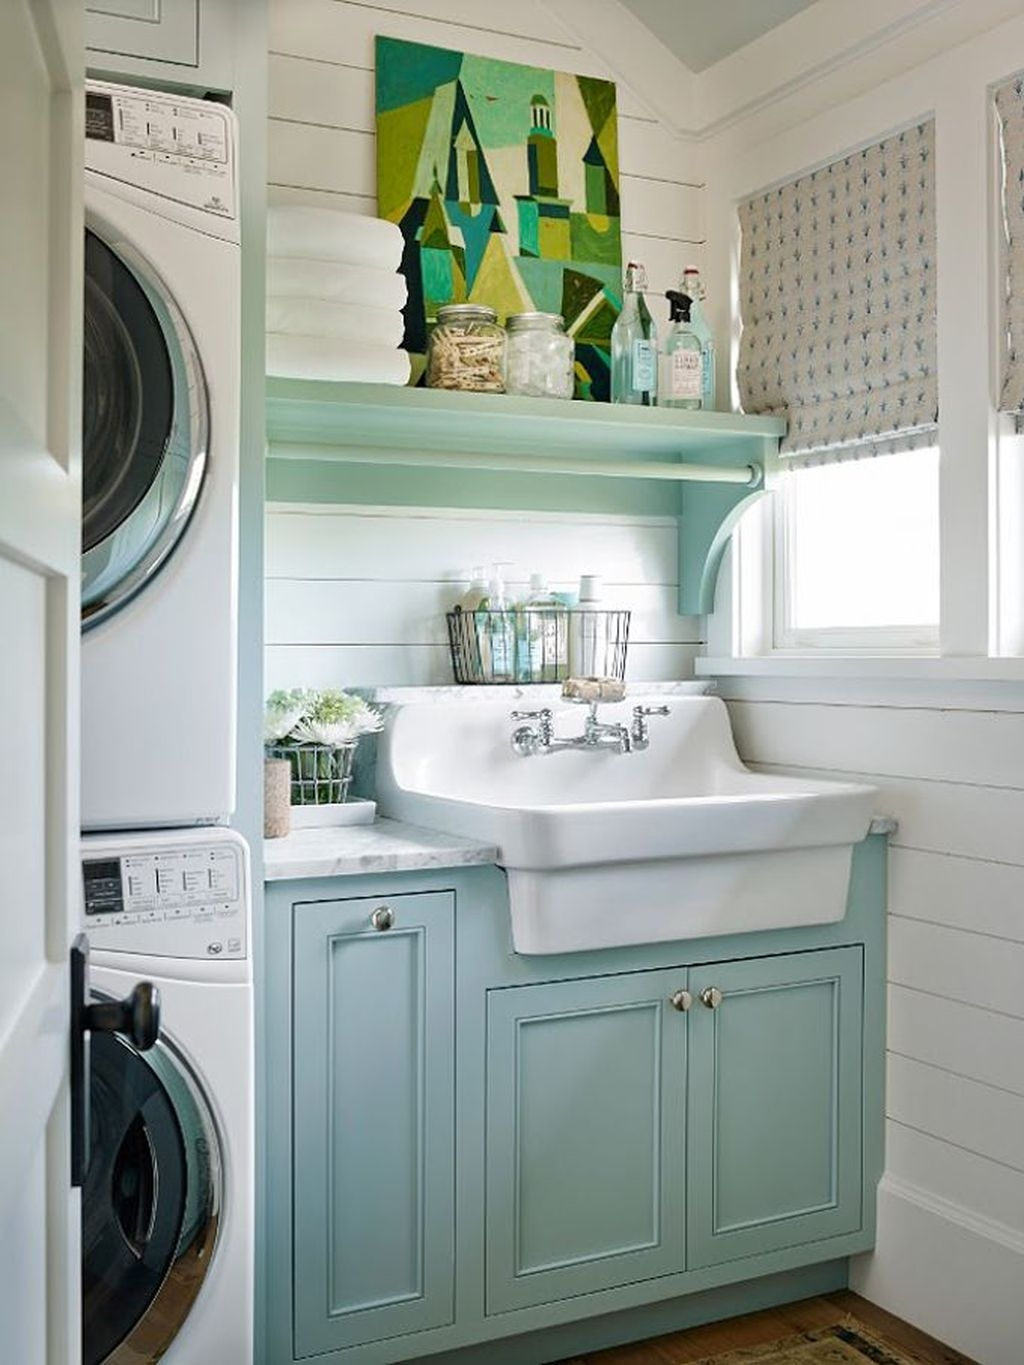 Totally Inspiring Small Functional Laundry Room Ideas 42